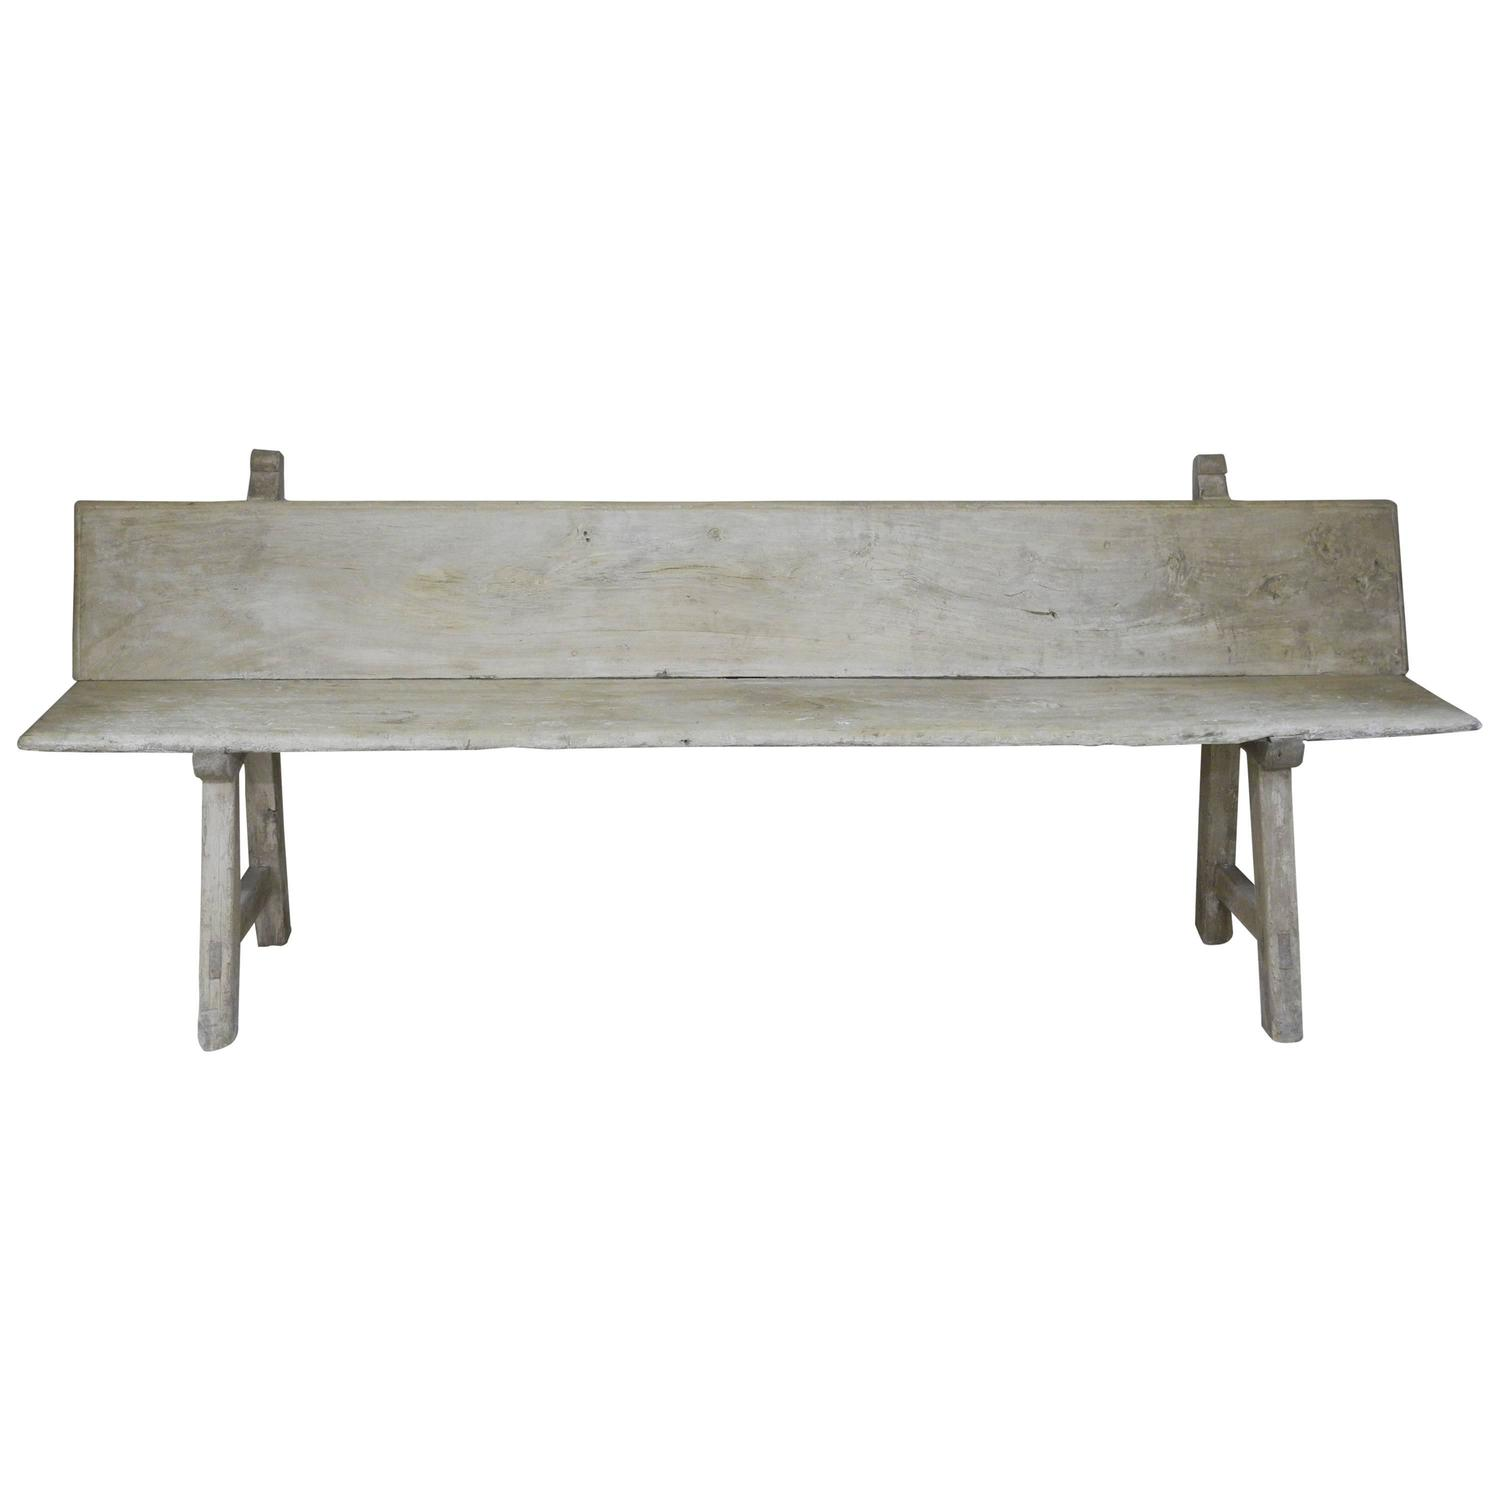 Antique Spanish Wooden Bench Circa 1800 For Sale At 1stdibs